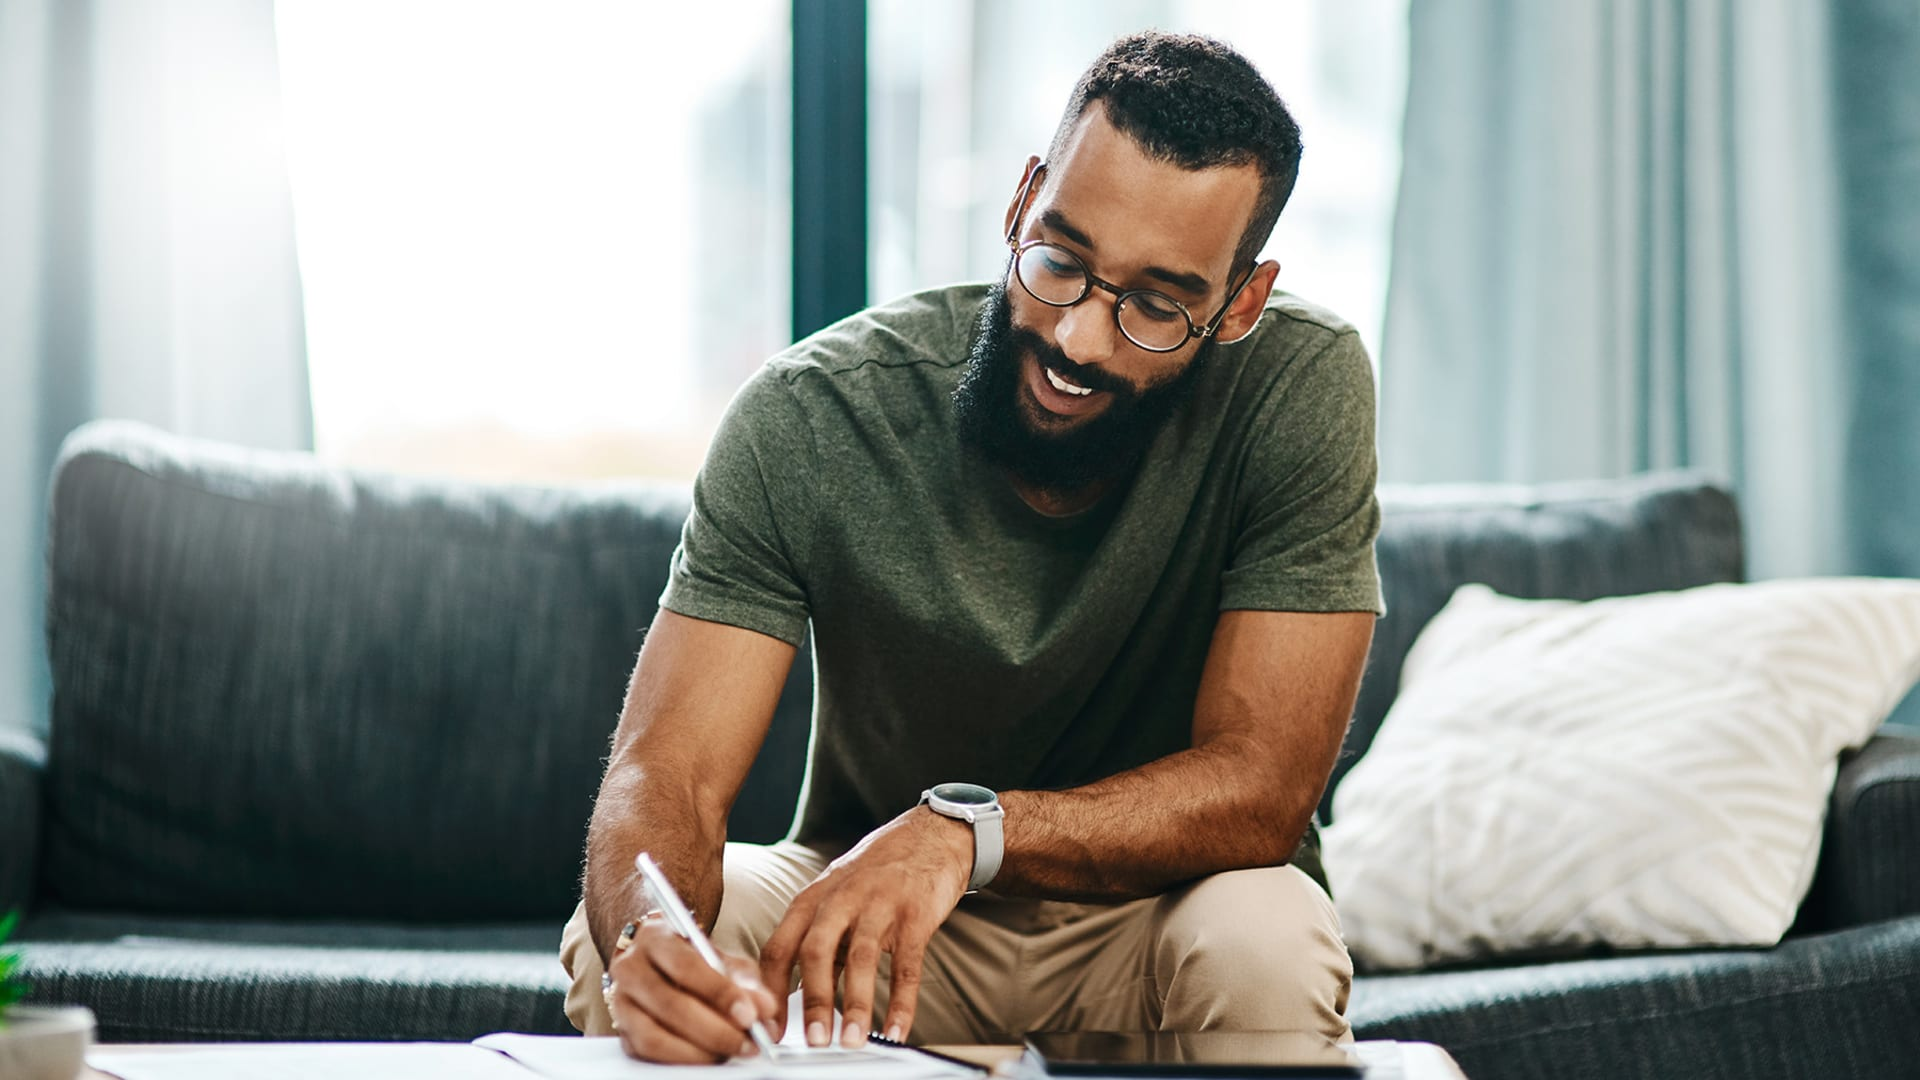 An Easy, 3-Step Goal-Setting Plan to Achieve Your Biggest Dreams